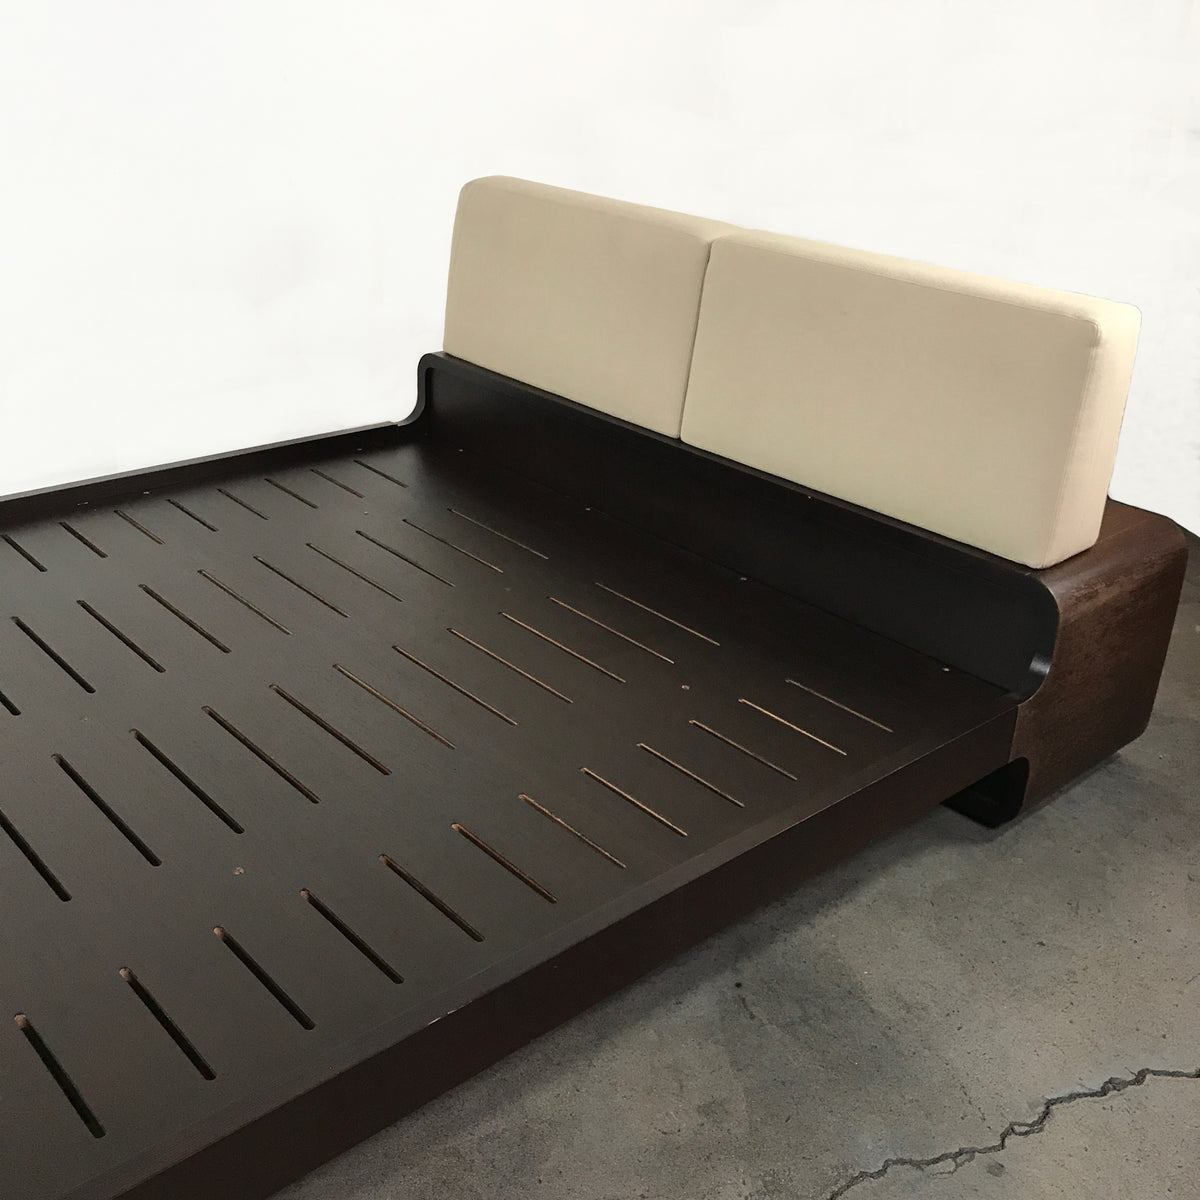 Emmemobili Dark Wood Coiba Bed by Ballabio-Elli Euro Queen